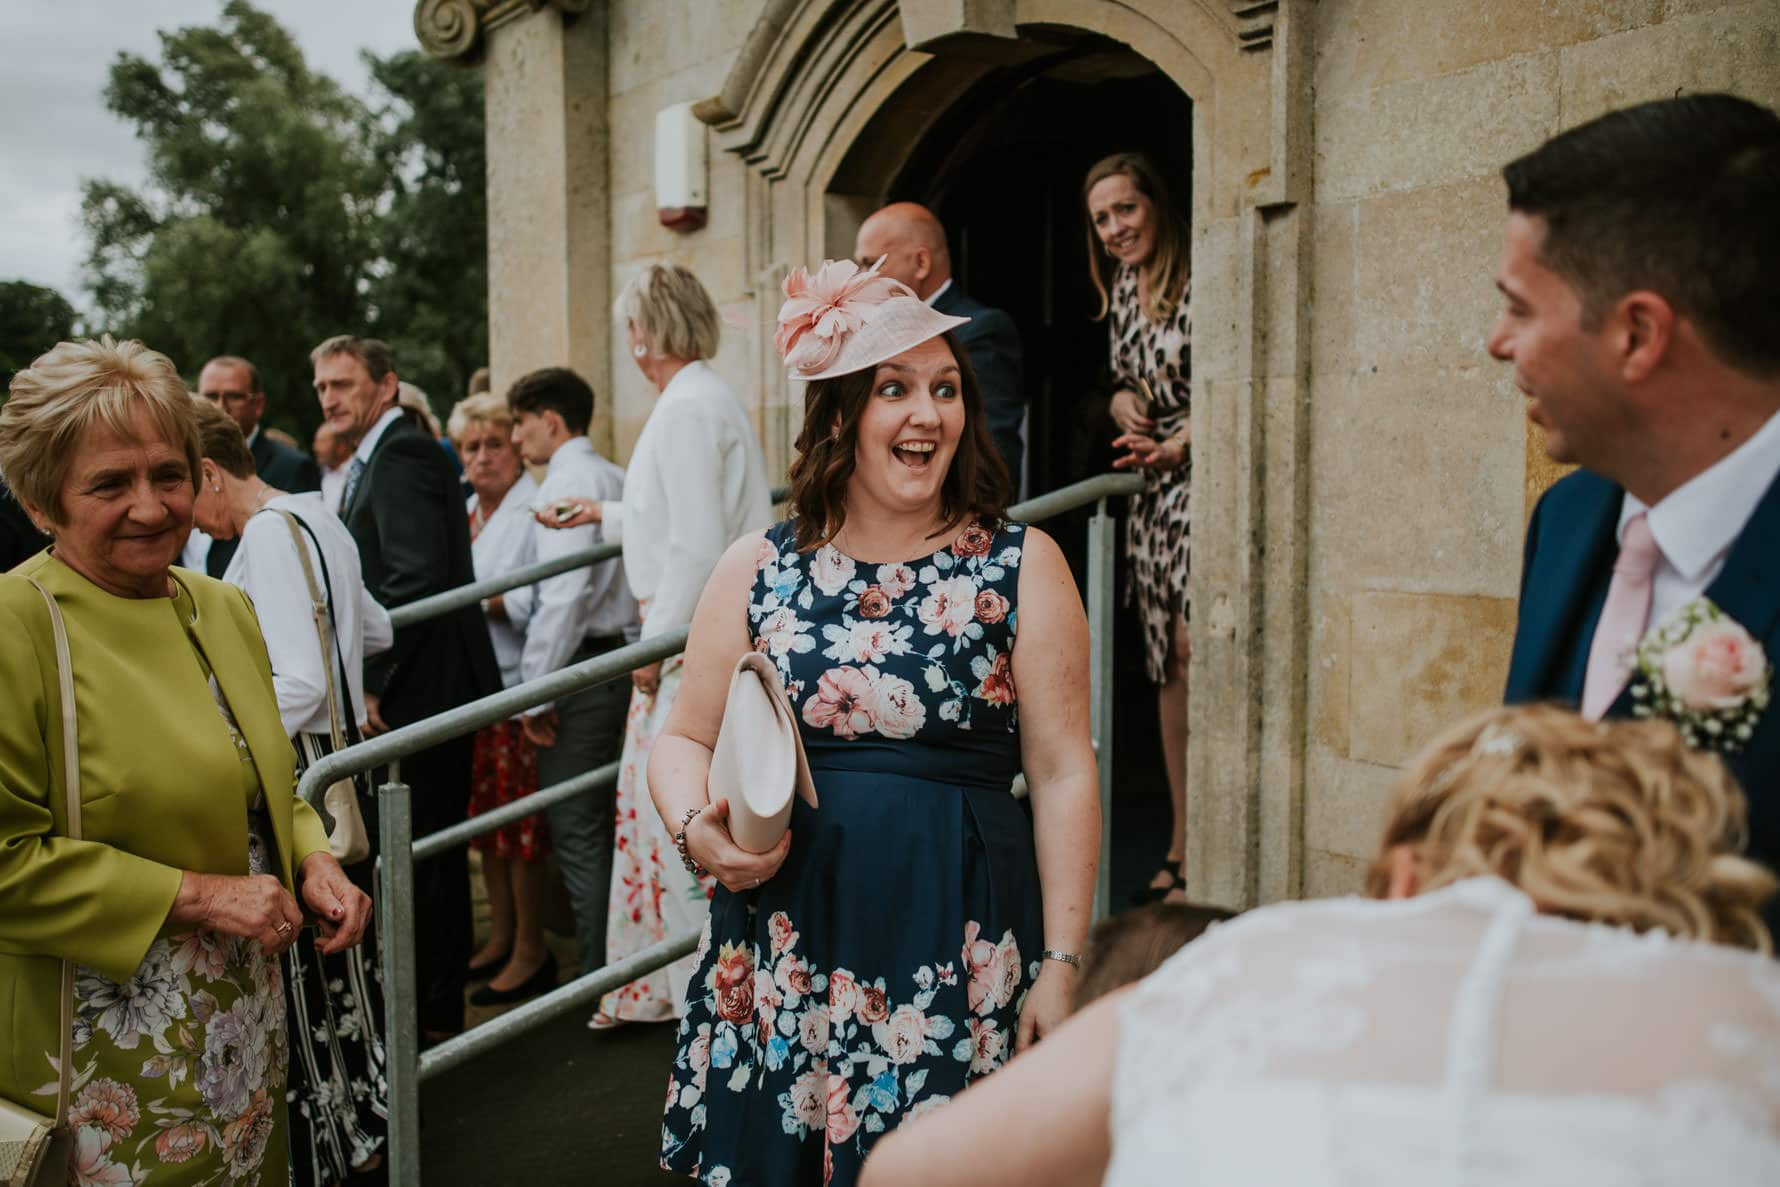 wedding guest at normanton church being hapy